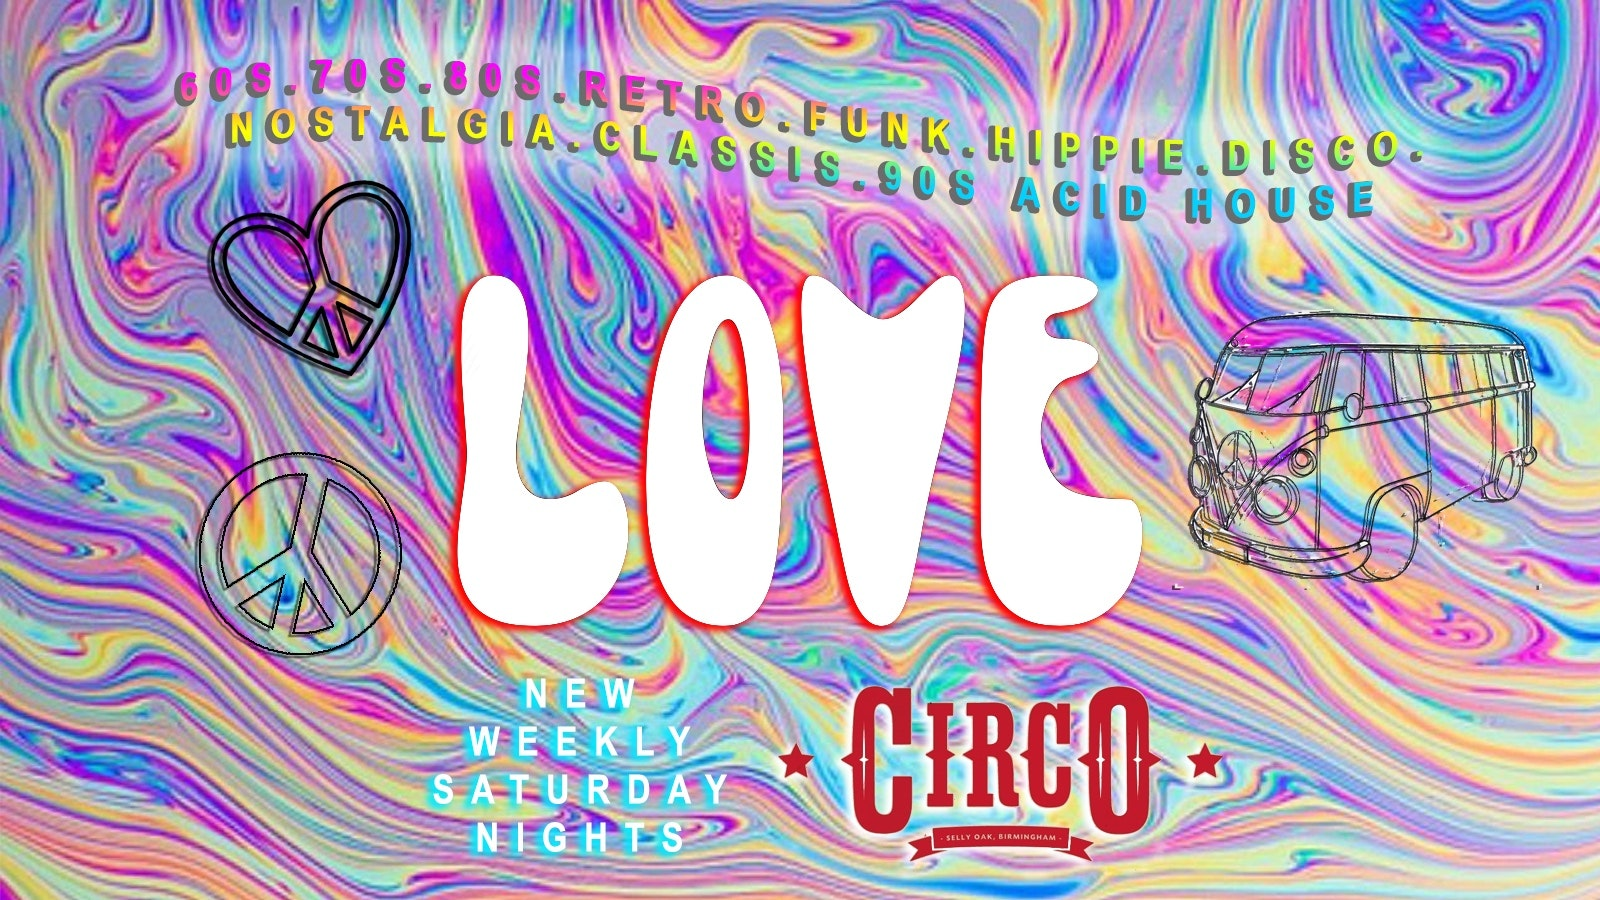 LOVE: Halloween Psychedelic Disco (Part 1) – Saturdays at Circo (Selly Oak) – £1 Entry guestlist!